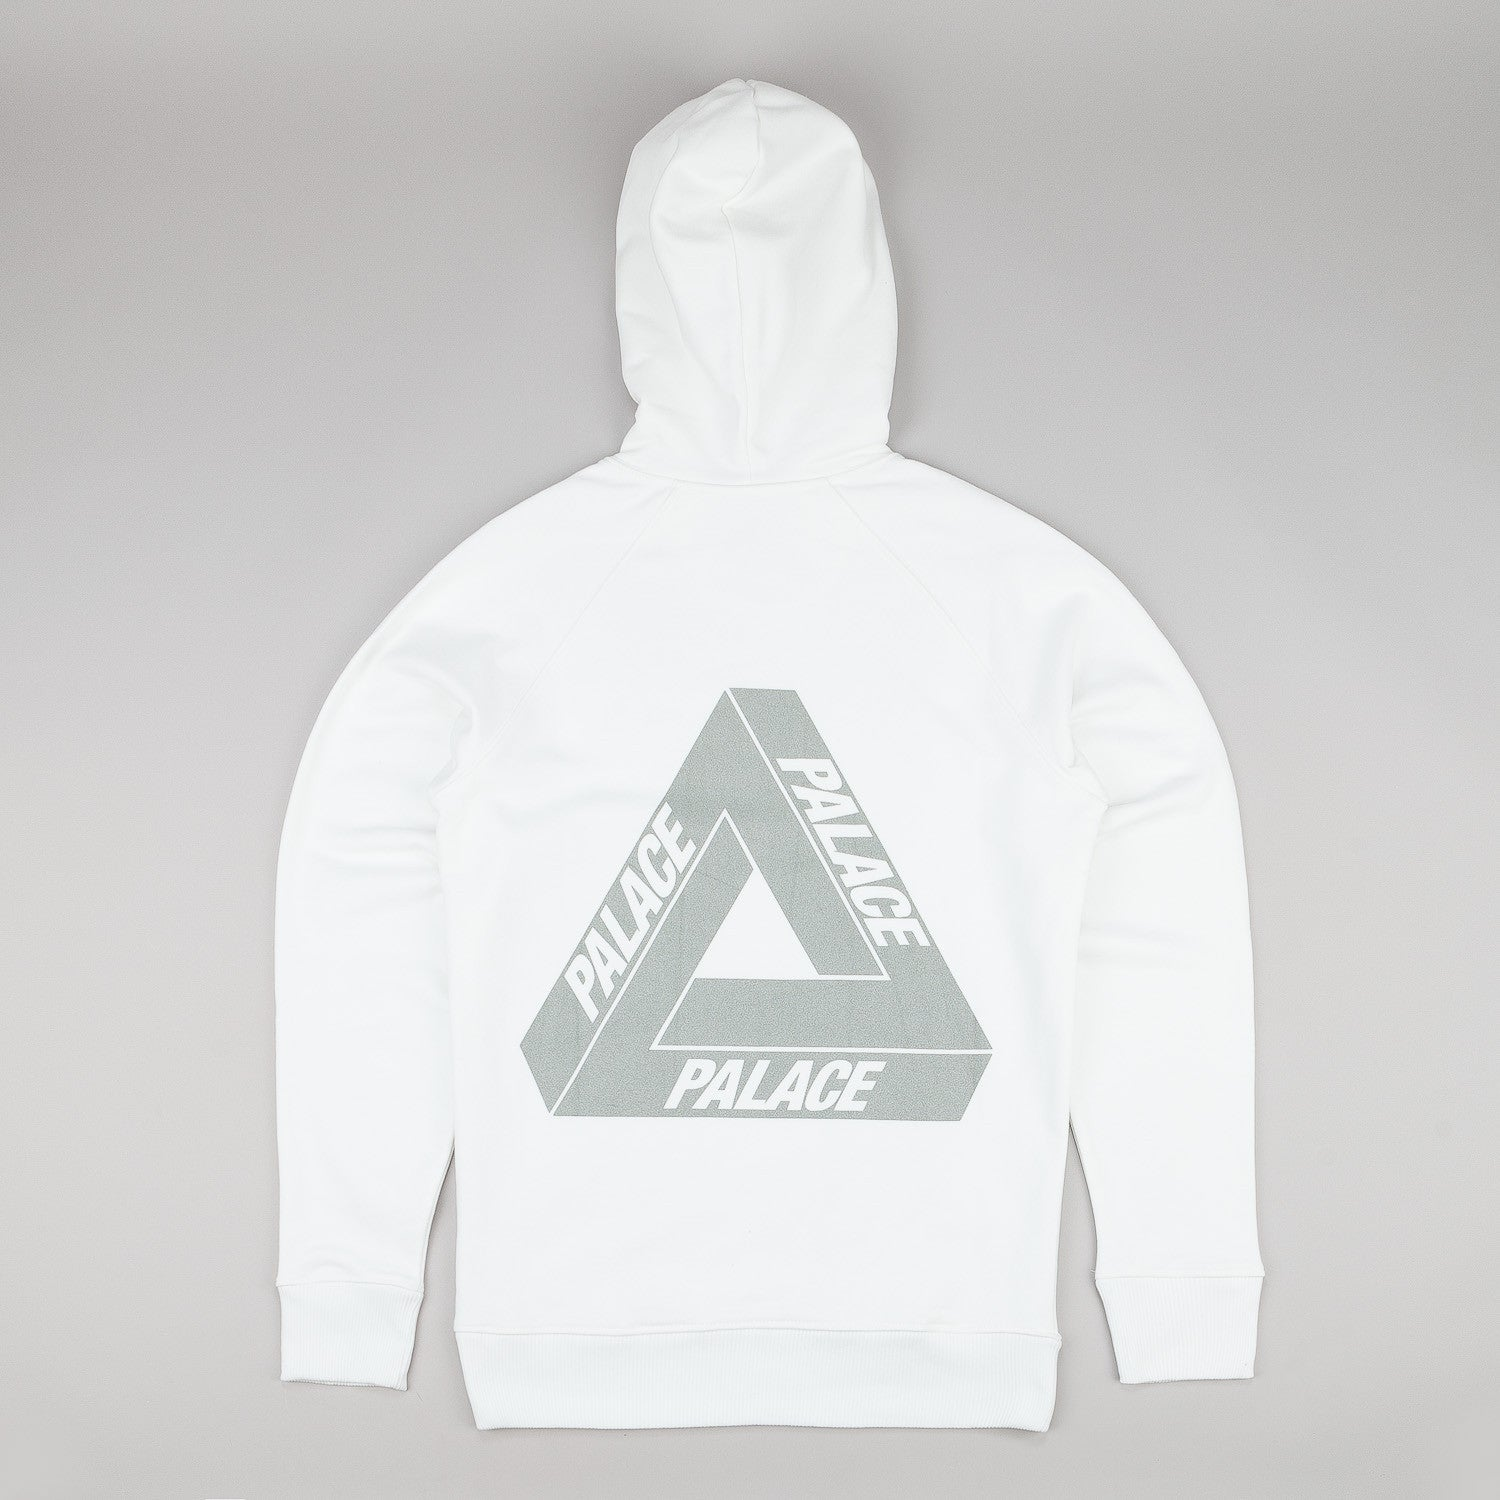 Palace 3M Hooded Sweatshirt - White